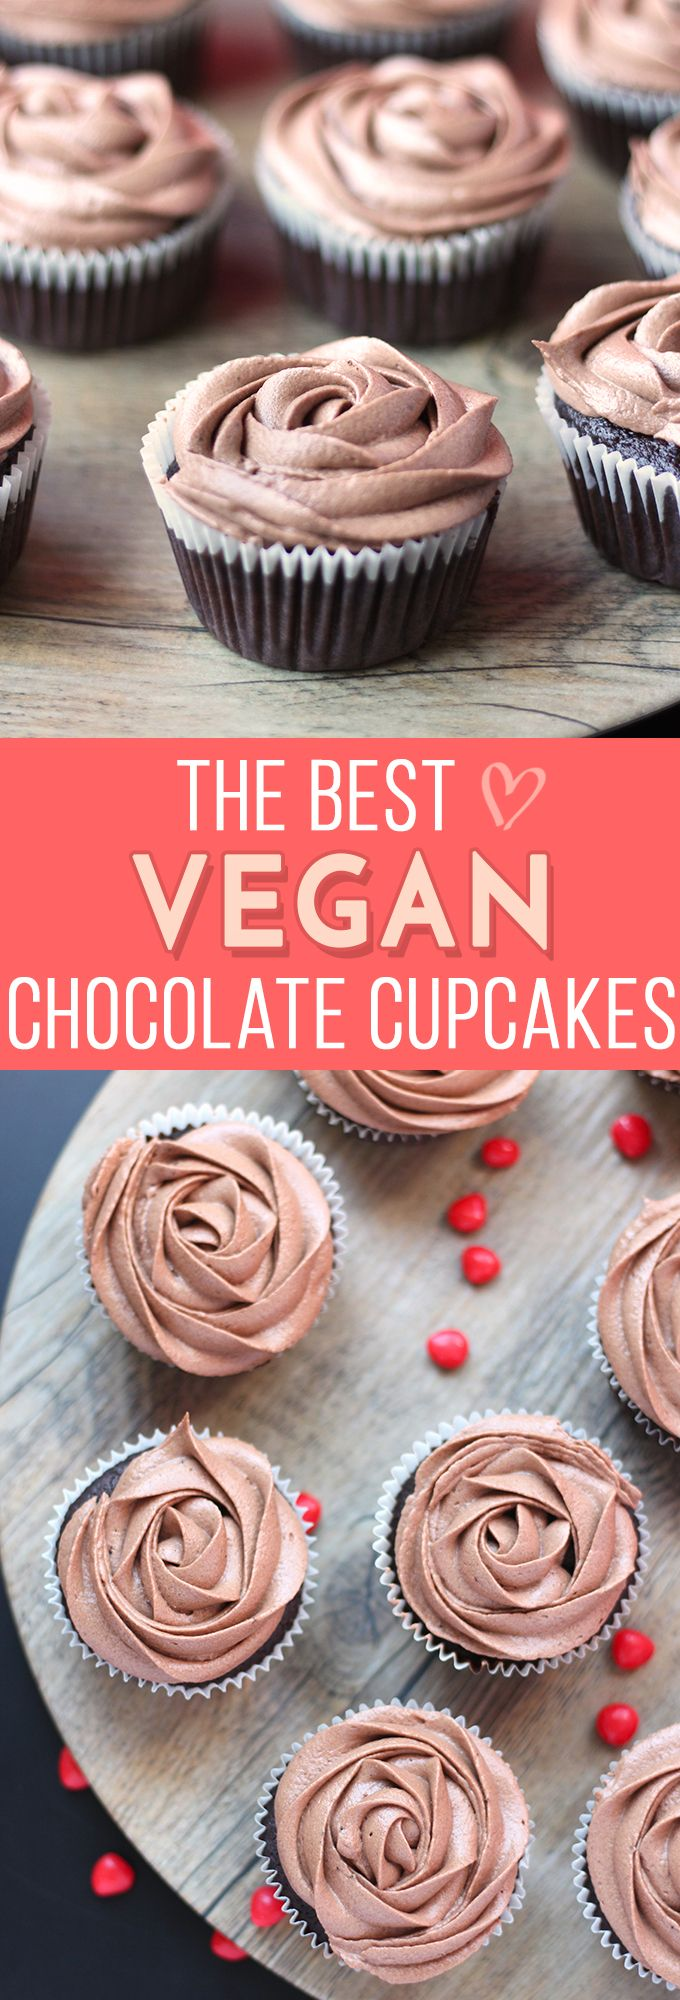 The Best Vegan Chocolate Cupcakes - Sweet Like Cocoa